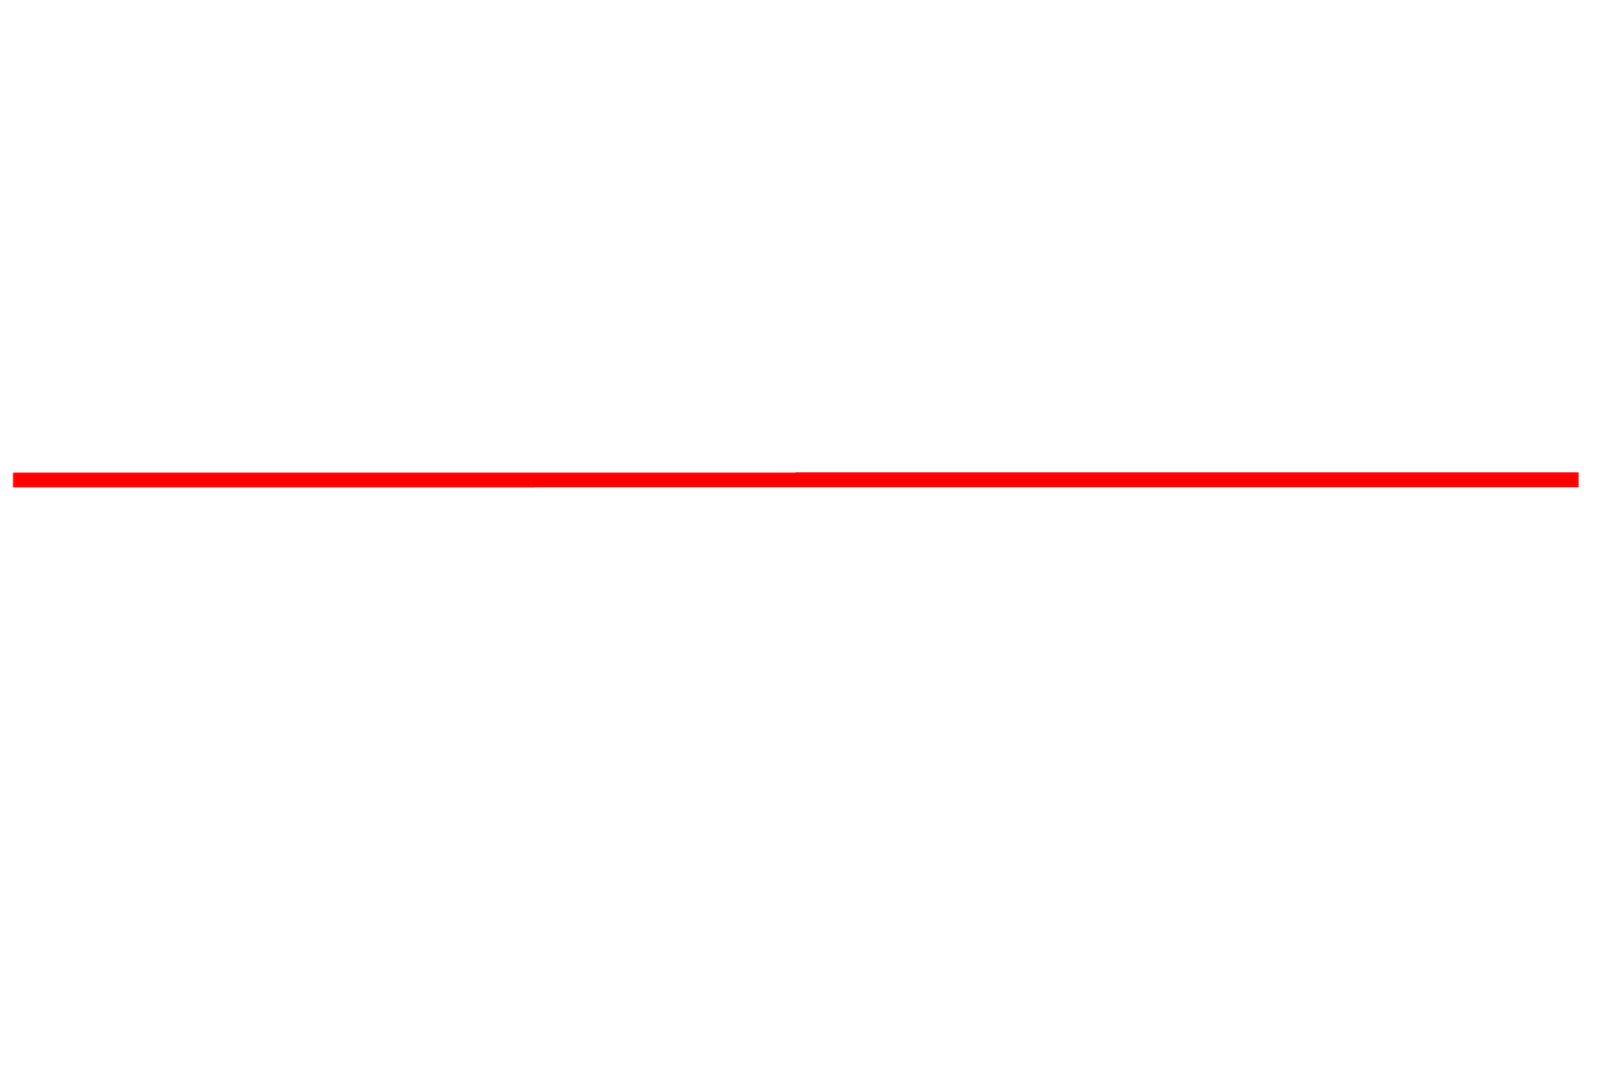 Line Png - Red-line.png